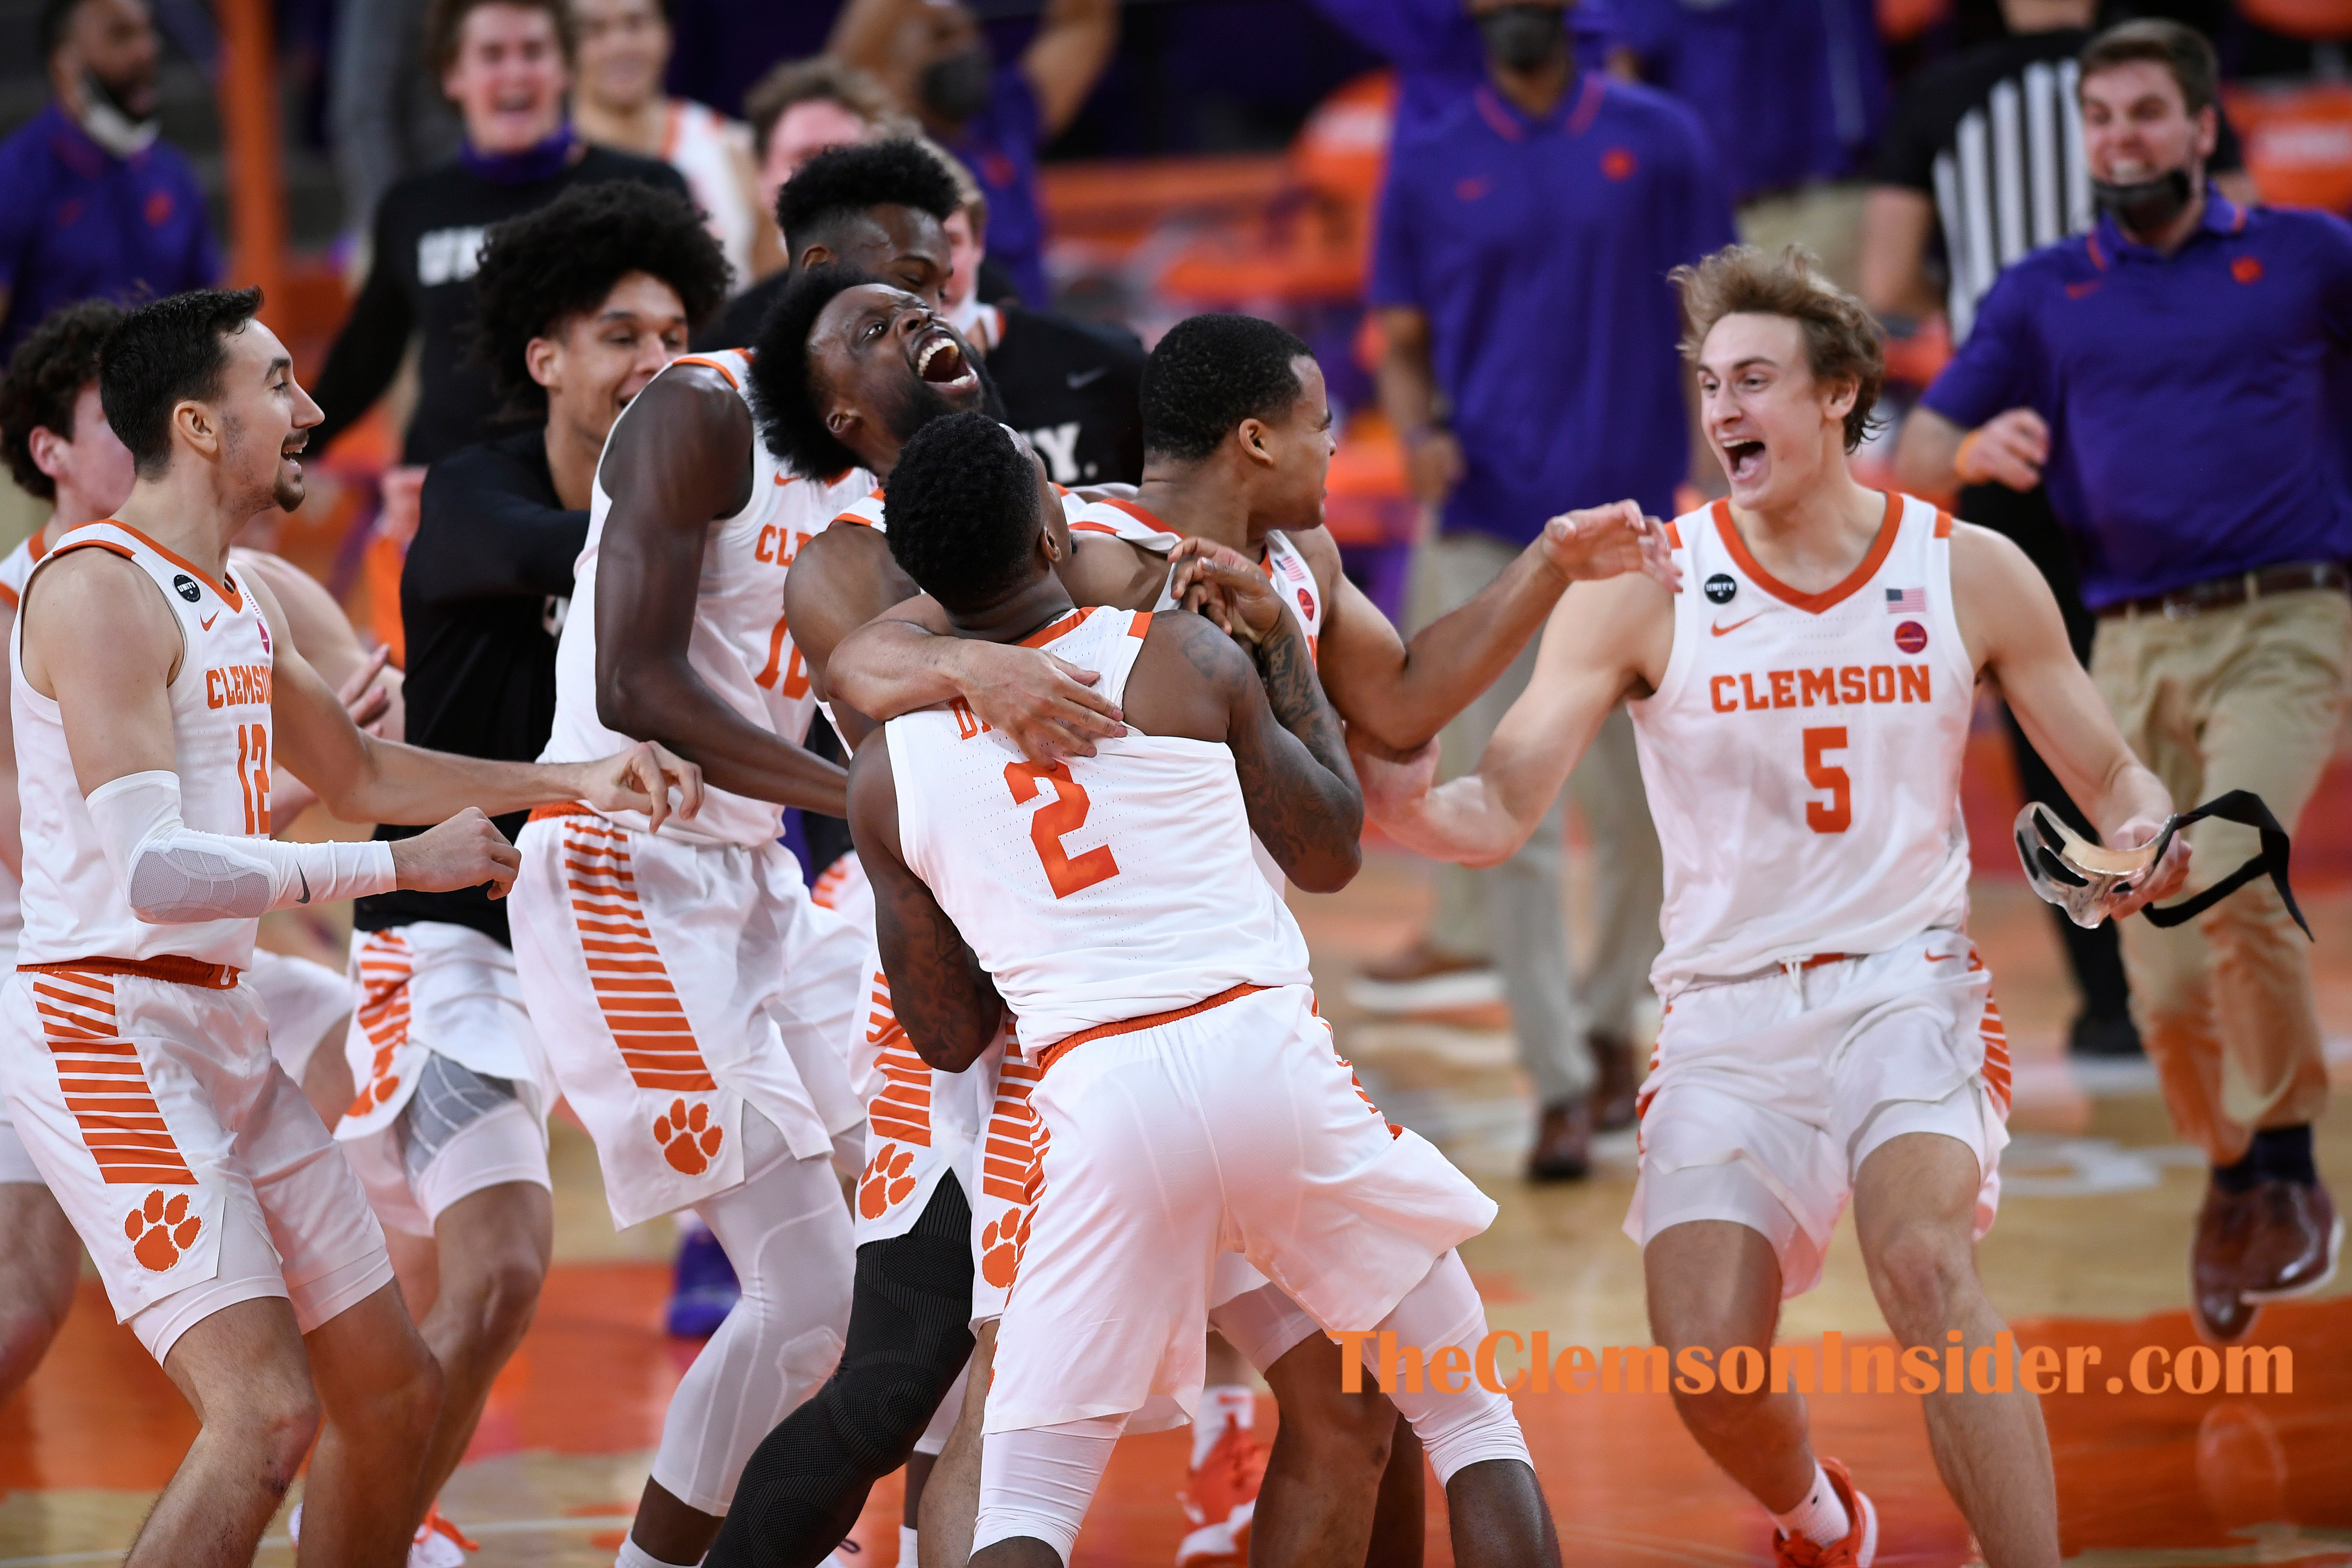 Clemson guard Nick Honor (4) celebrates teammates after sinking the game winning three point basket against Georgia Tech at Clemson's Littlejohn Coliseum Saturday, February 12, 2021. ACC Pool/Bart Boatwright/The Clemson Insider